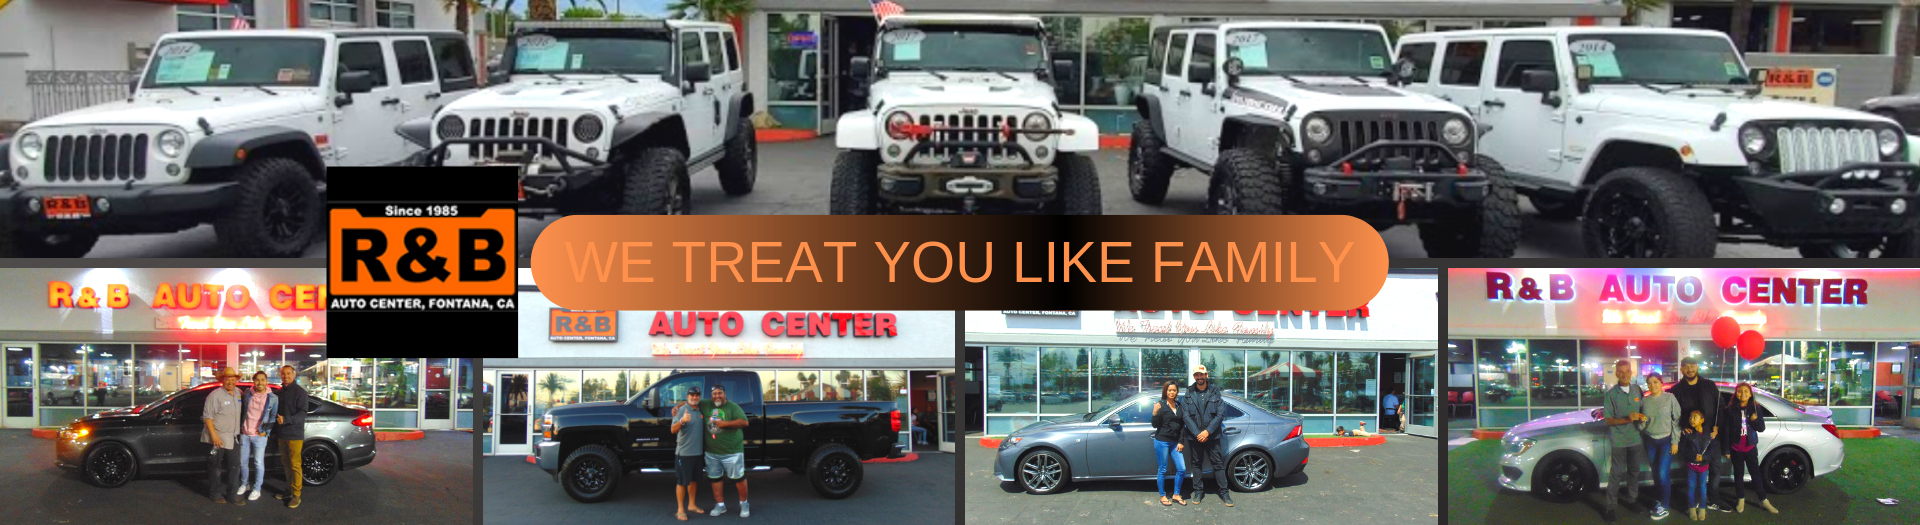 R&B Auto Center | Inland Empire Used Car Dealer | Used Cars